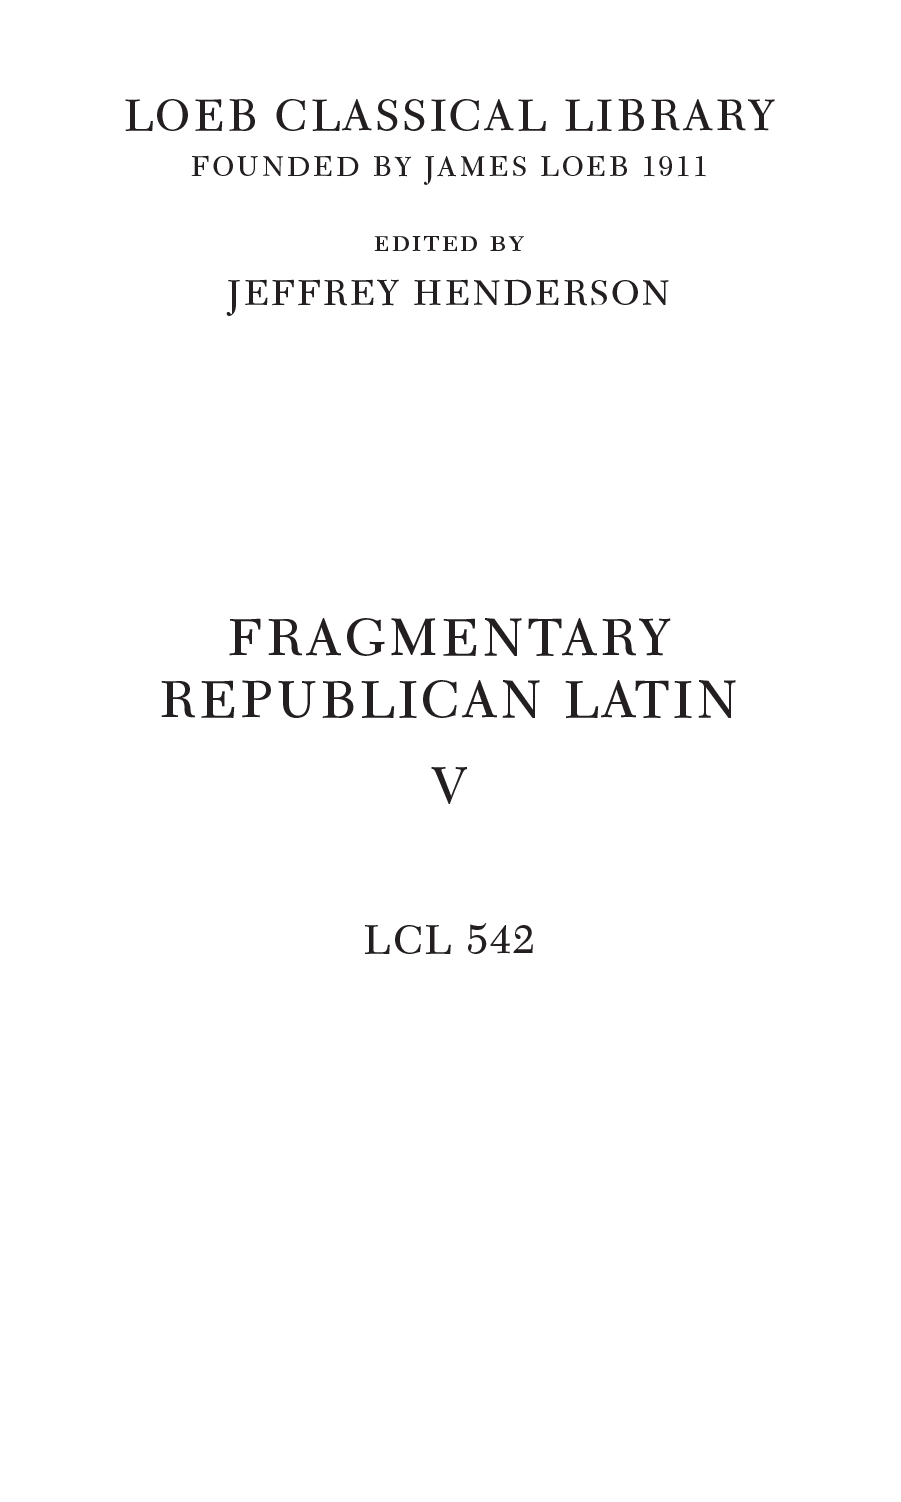 LOEB CLASSICAL LIBRARY FOUNDED BY JAMES LOEB 1911 edited by jeffrey henderson FRAGMENTARY REPUBLICAN LATIN V LCL 542